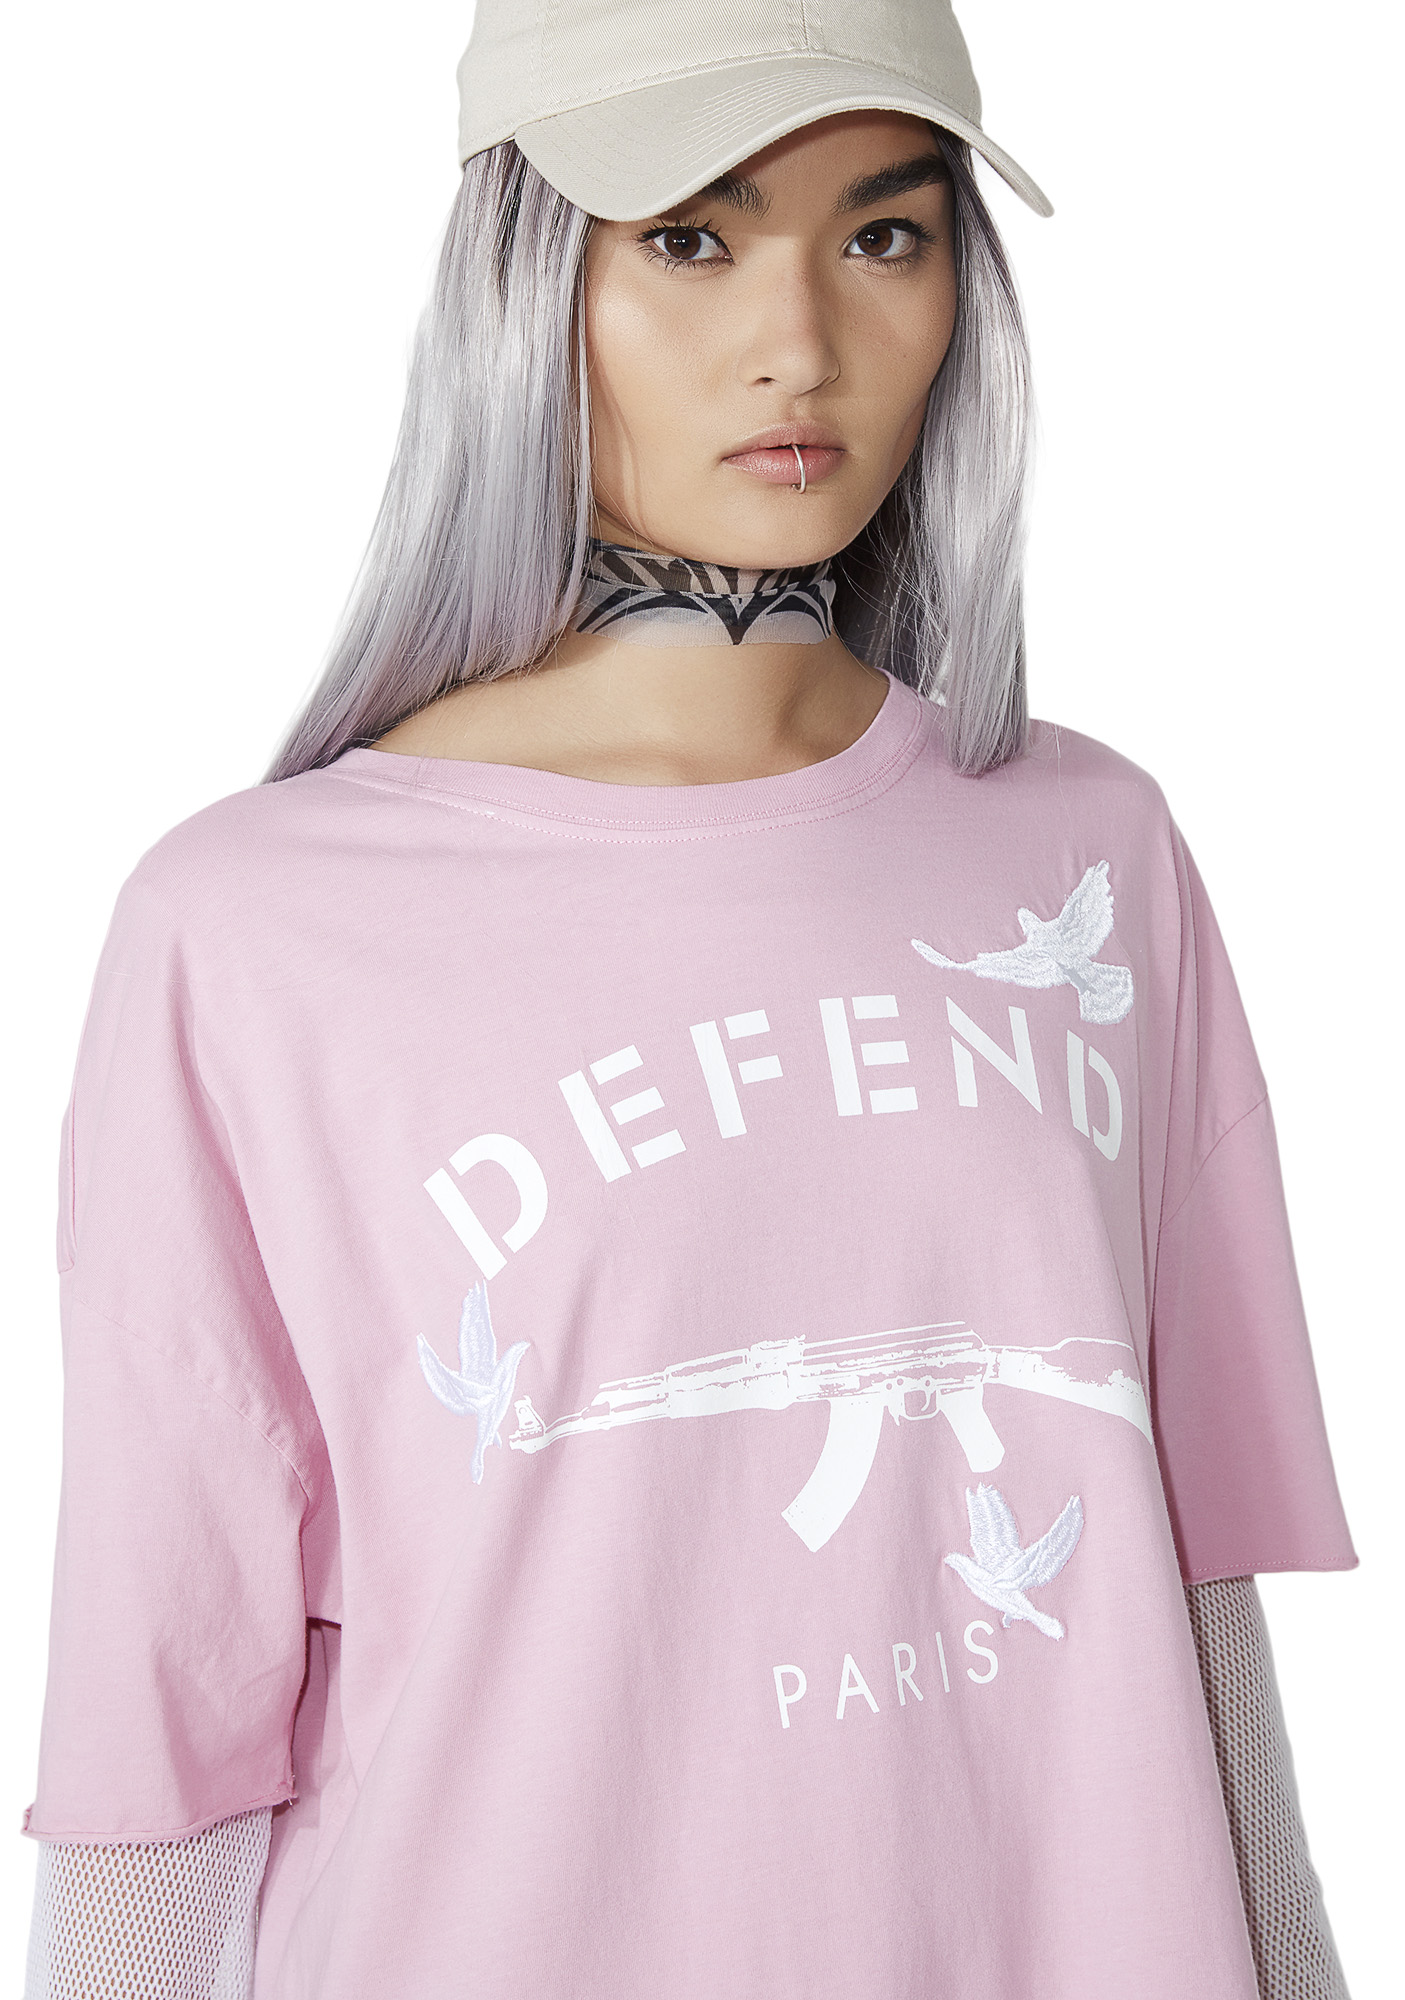 Defend Paris Faustin Tee